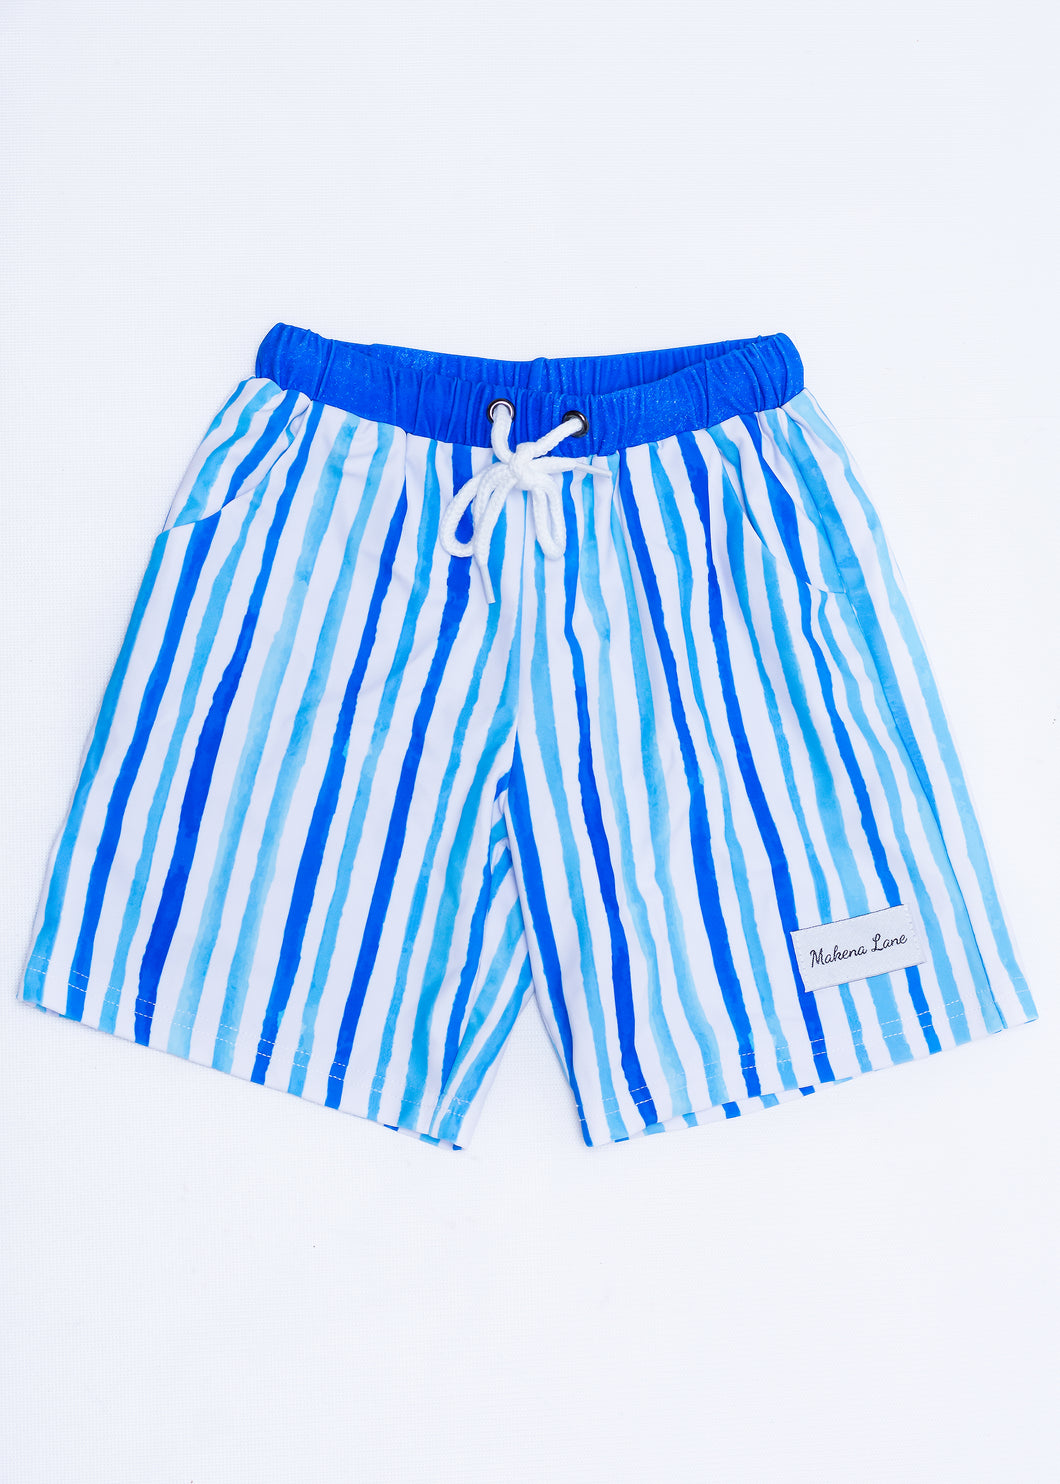 Striped Boys Swim Trunks